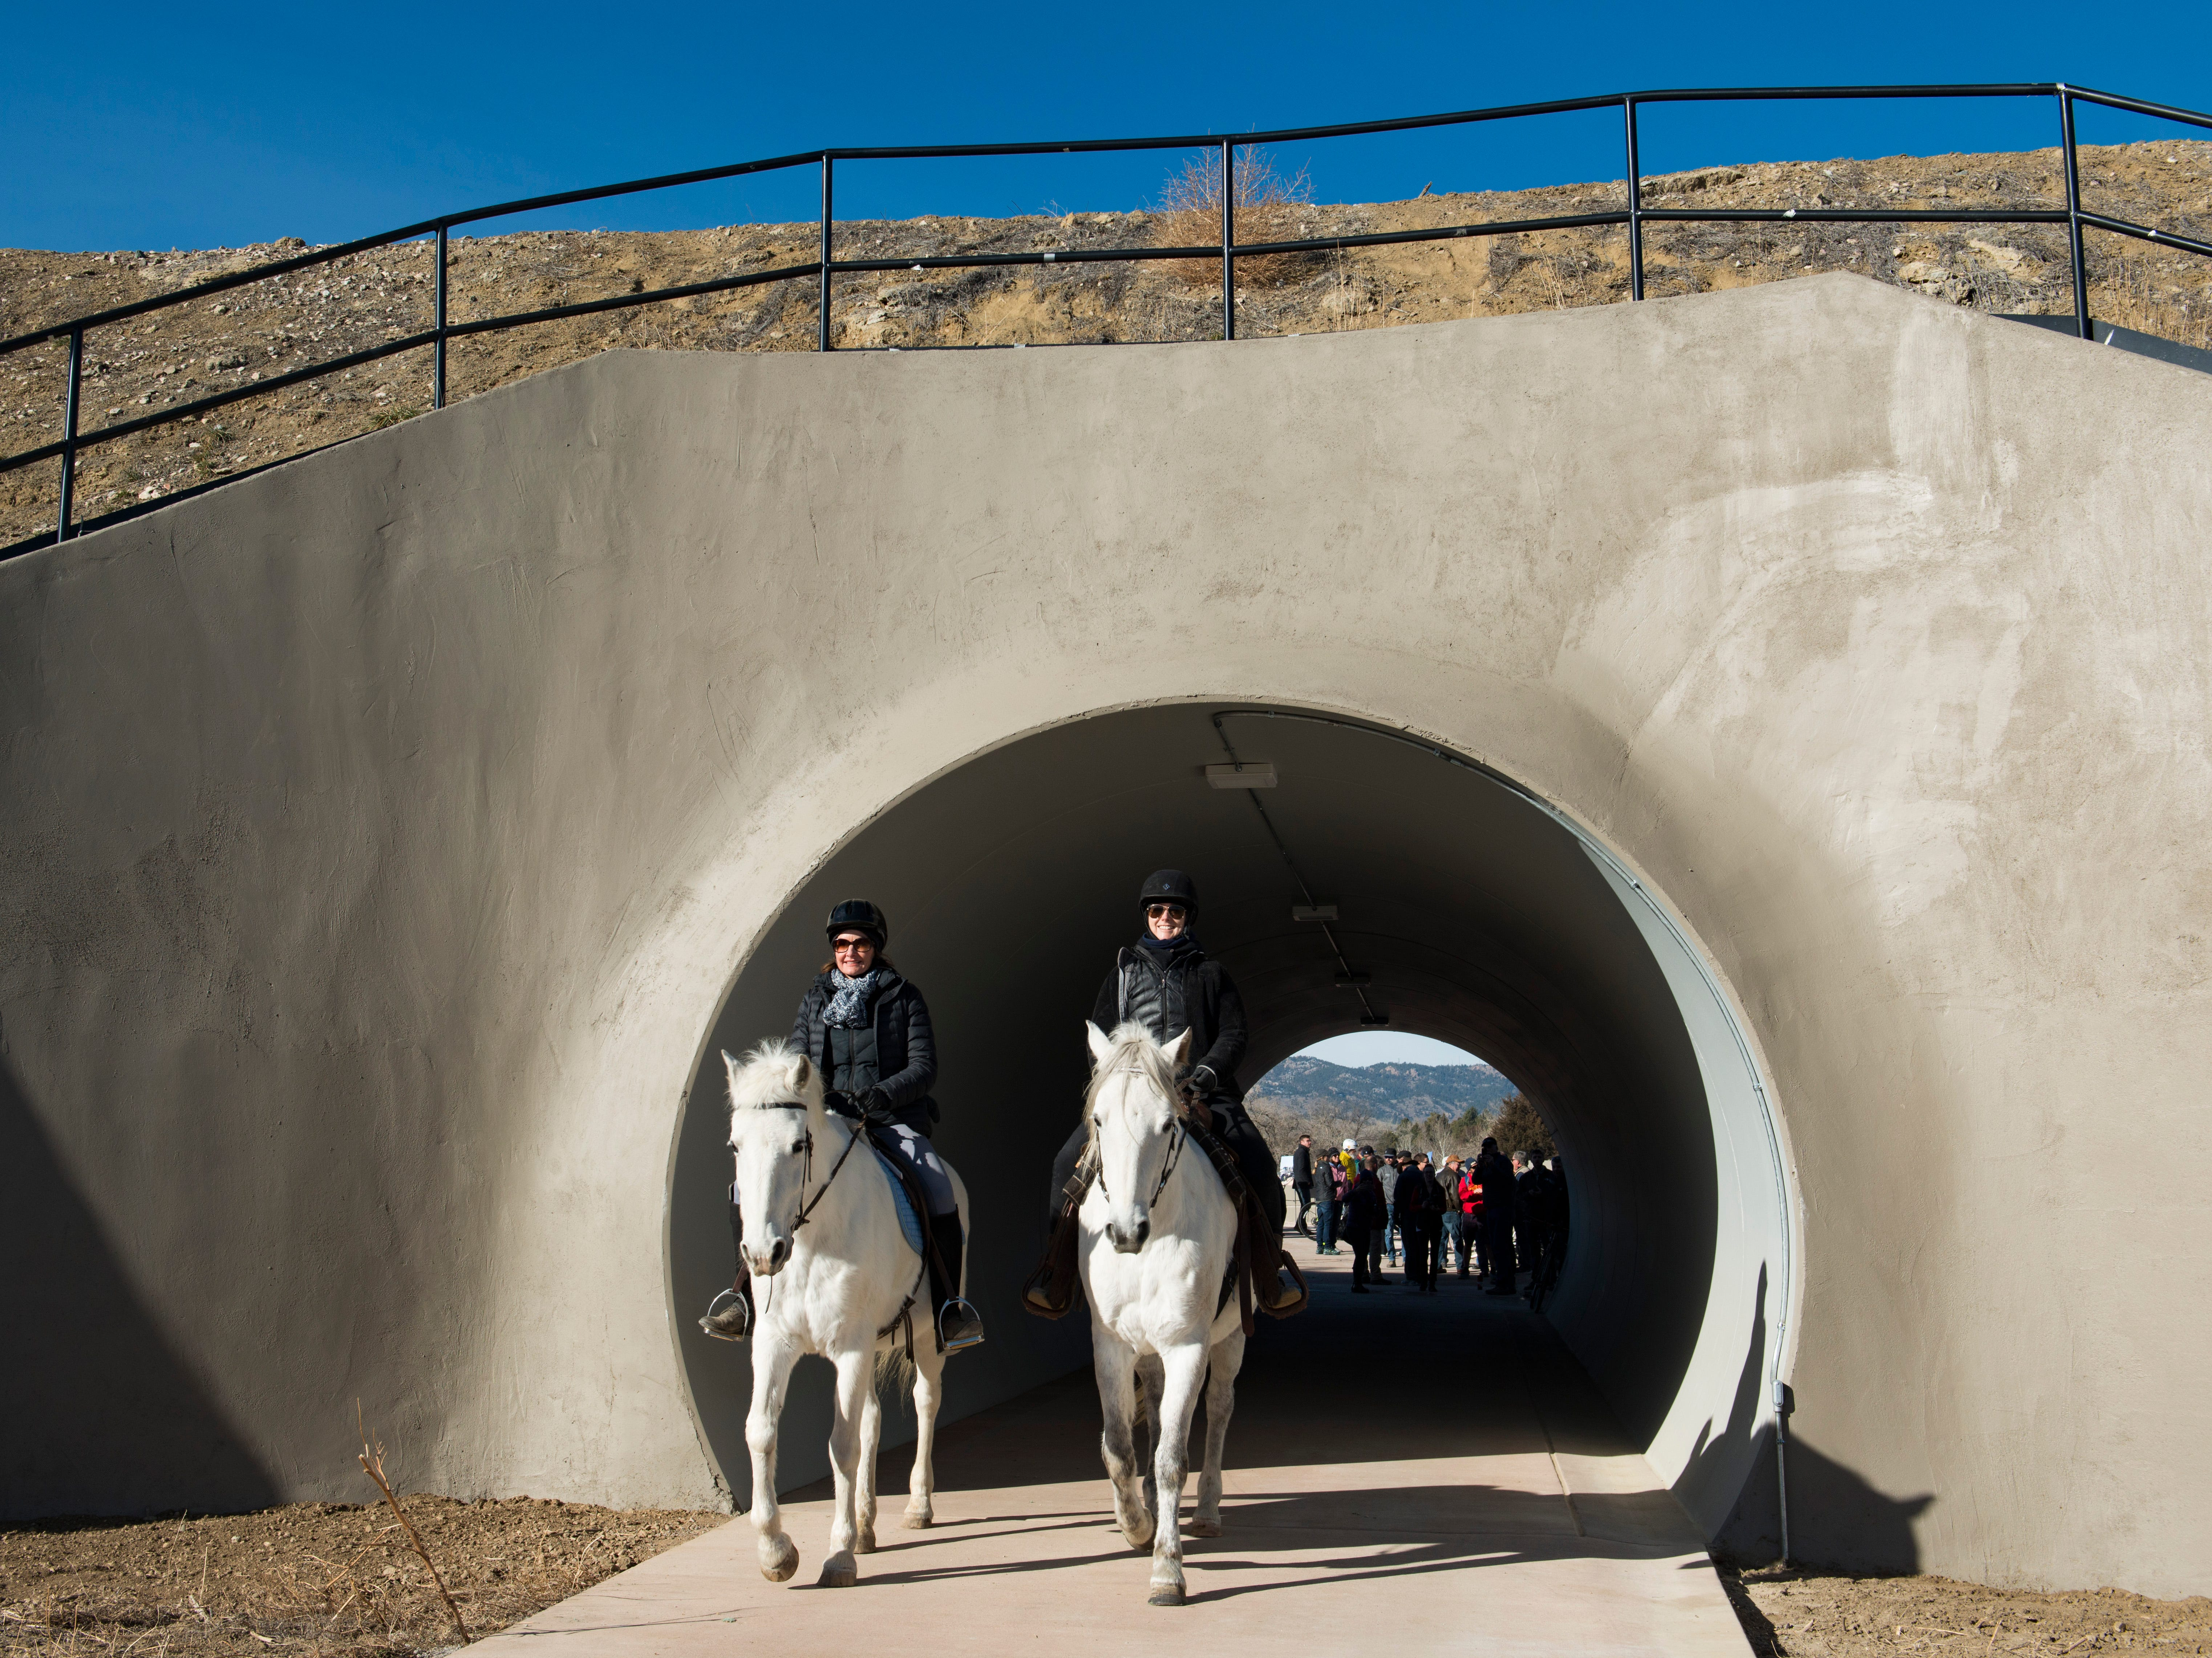 Kate Schoenecker and Sarah King ride their horses, Contare and Brio,  through the new 70-foot-long Fossil Creek Trail pedestrian tunnel in south Fort Collins on Monday, December 10, 2018. The new 1.7 mile section of trail runs under the BNSF railway to connect College Avenue and Shields Street.